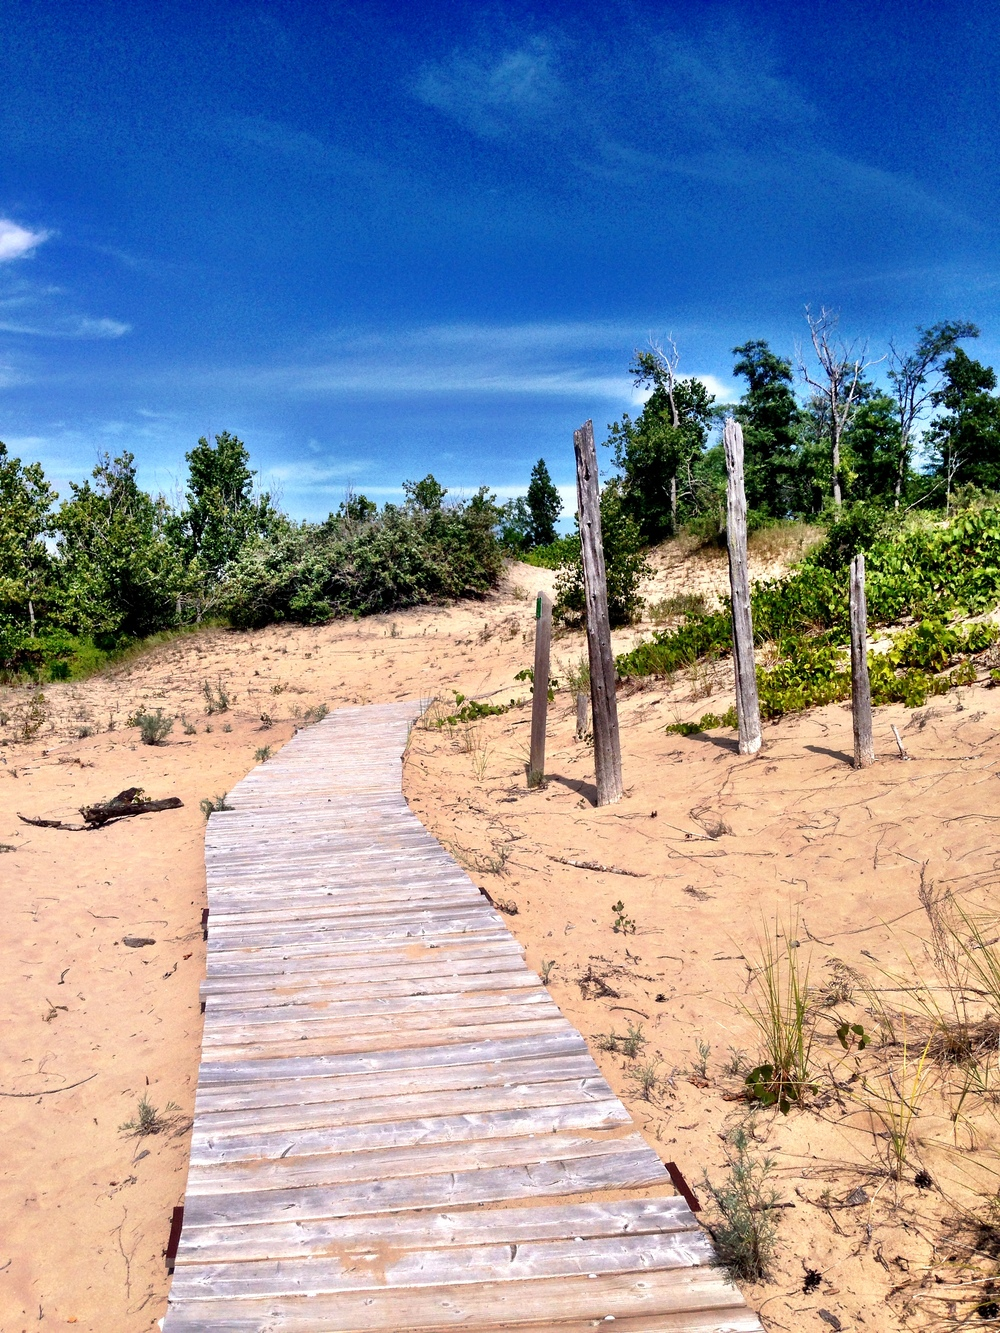 Sandbanks- The Dunes Trail